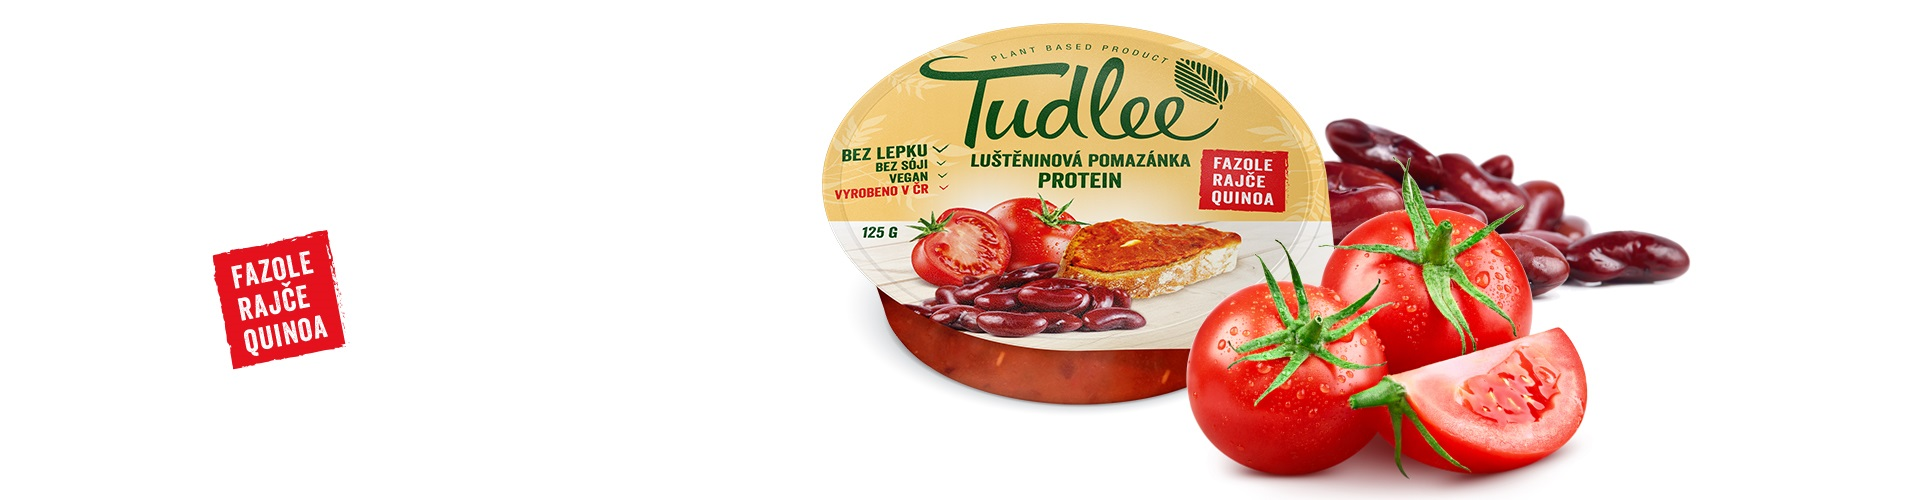 Tudlee protein - bean quinoa and tomato